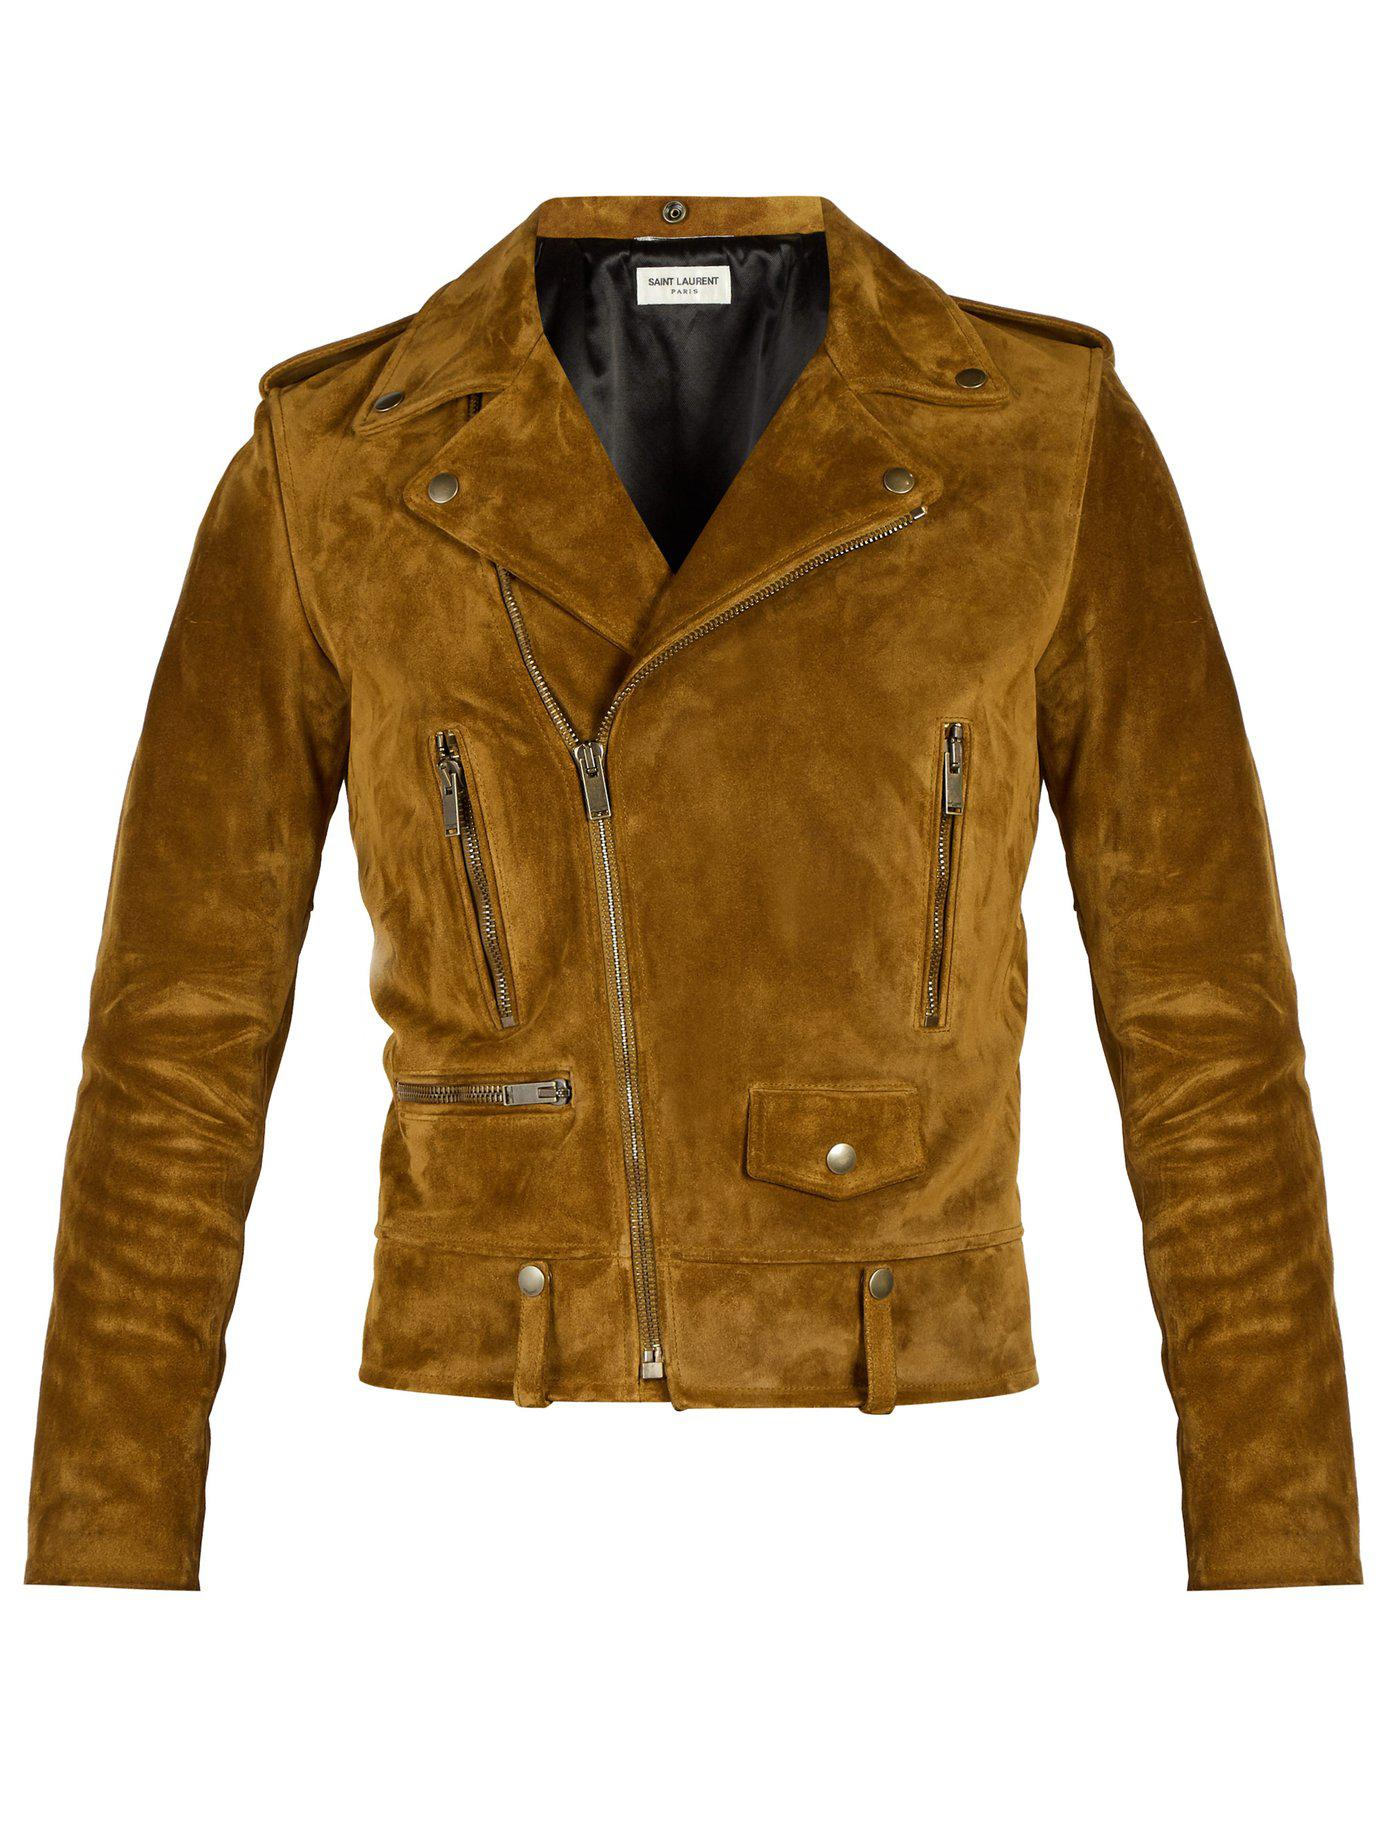 58b4b836d1c0 Lyst - Saint Laurent Suede Biker Jacket in Brown for Men